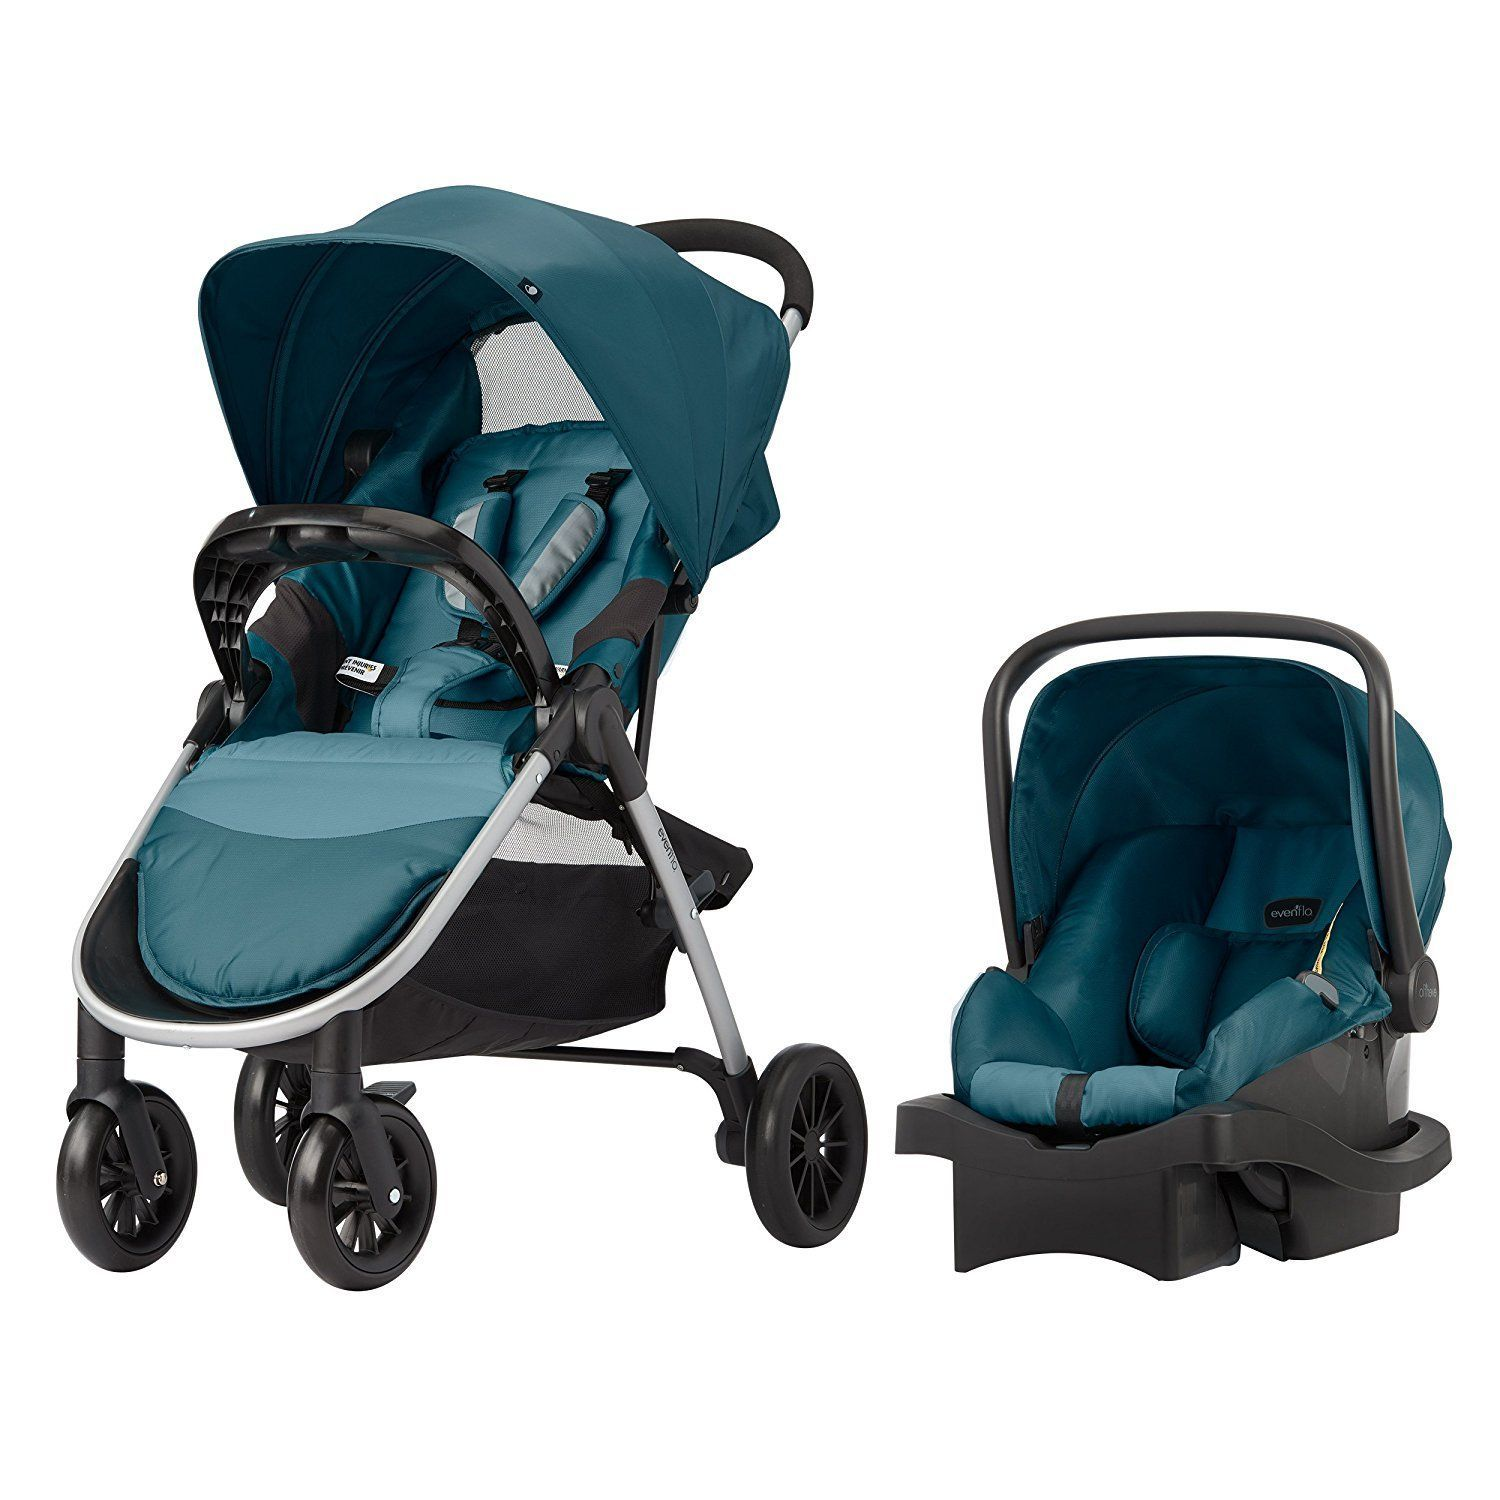 Evenflo Folio Travel System, Meridian See how you can